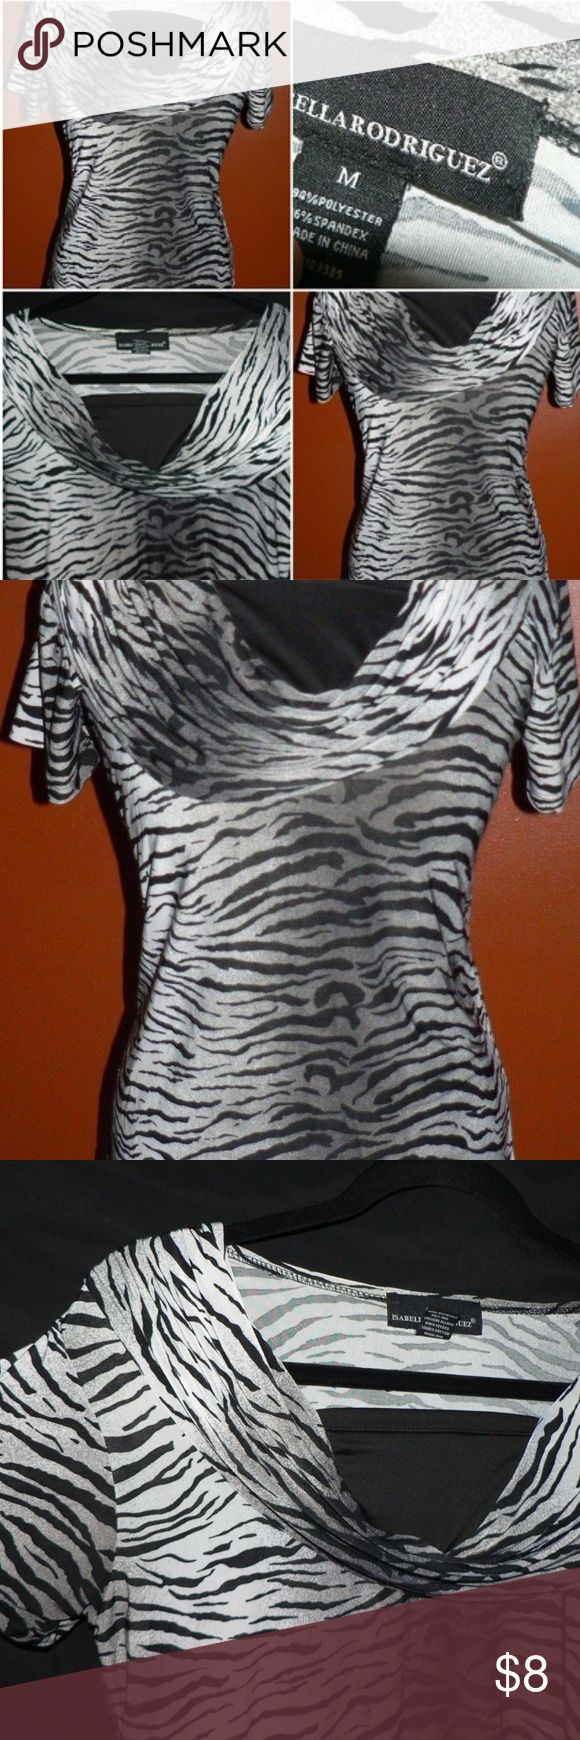 "ISABELLA RODRIGUEZ ""Zebra"" Stretchy Blouse Top M Pretty Isabella Rodriguez Blouse Ladies sz: Medium Polyester & Spandex blend. Quite stretchy! Loose collar top for a Great Look- Approx. 34"" Around & Will Stretch, 24"" Inches length. While not brand new, the item is in EXCELLENT Condition isabella rodriguez Tops Blouses"